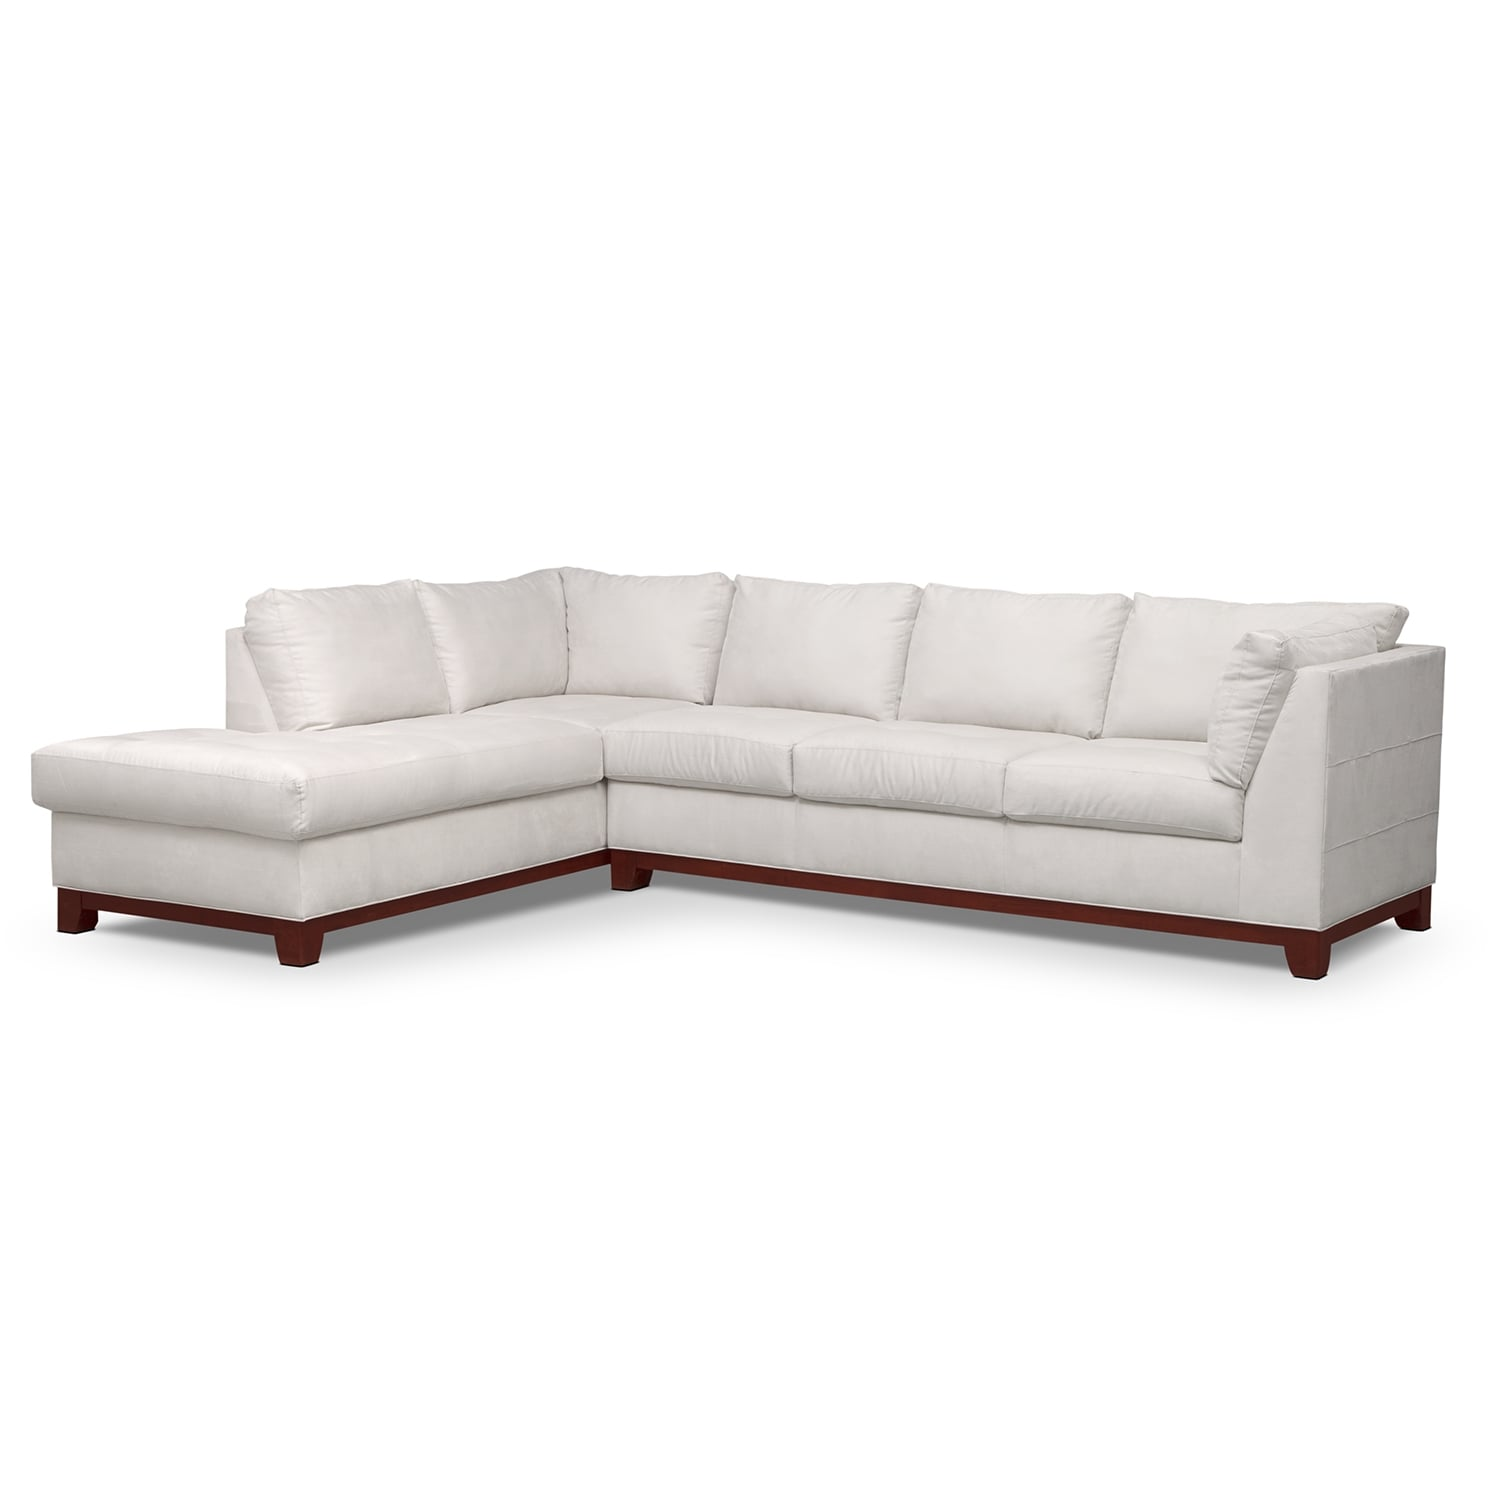 Soho Iii 2 Pc Sectional Reverse Value City Furniture